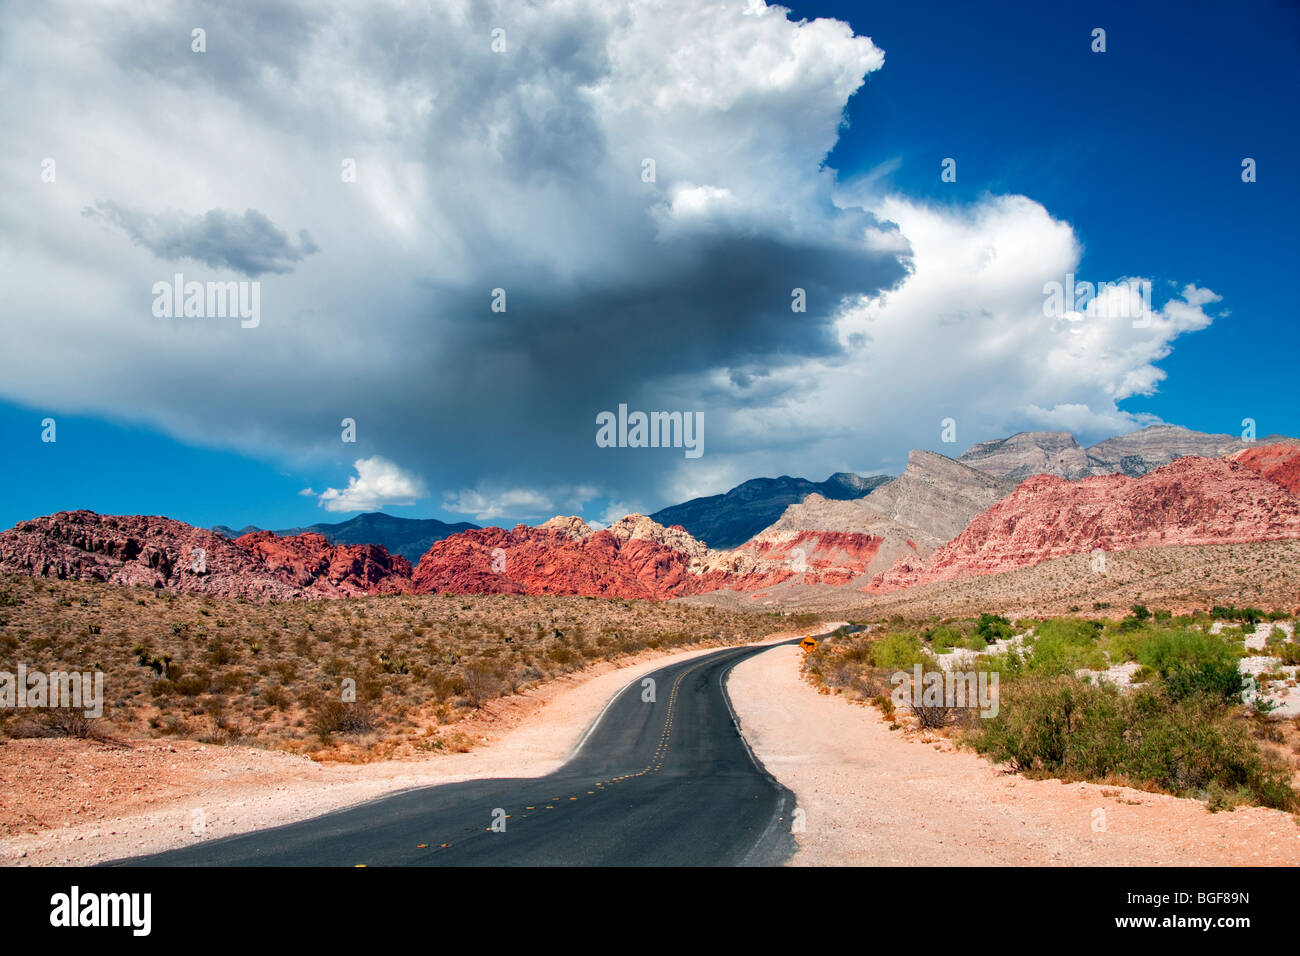 Road and thunderstorm clouds with Rock formations in Red Rock Canyon National Conservation Area, Nevada - Stock Image